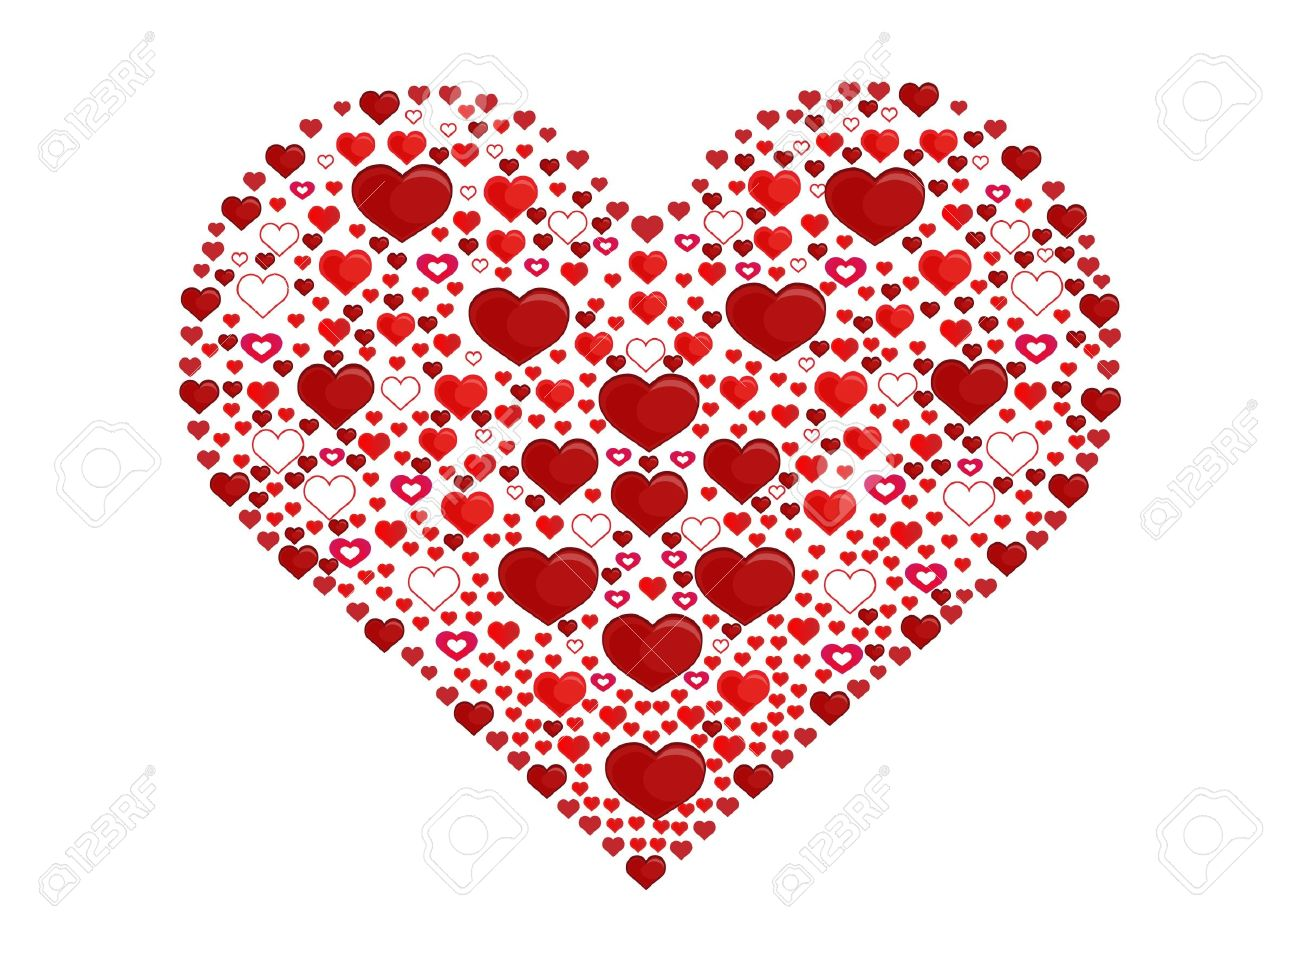 Big heart made of little hearts Stock Vector - 12426592